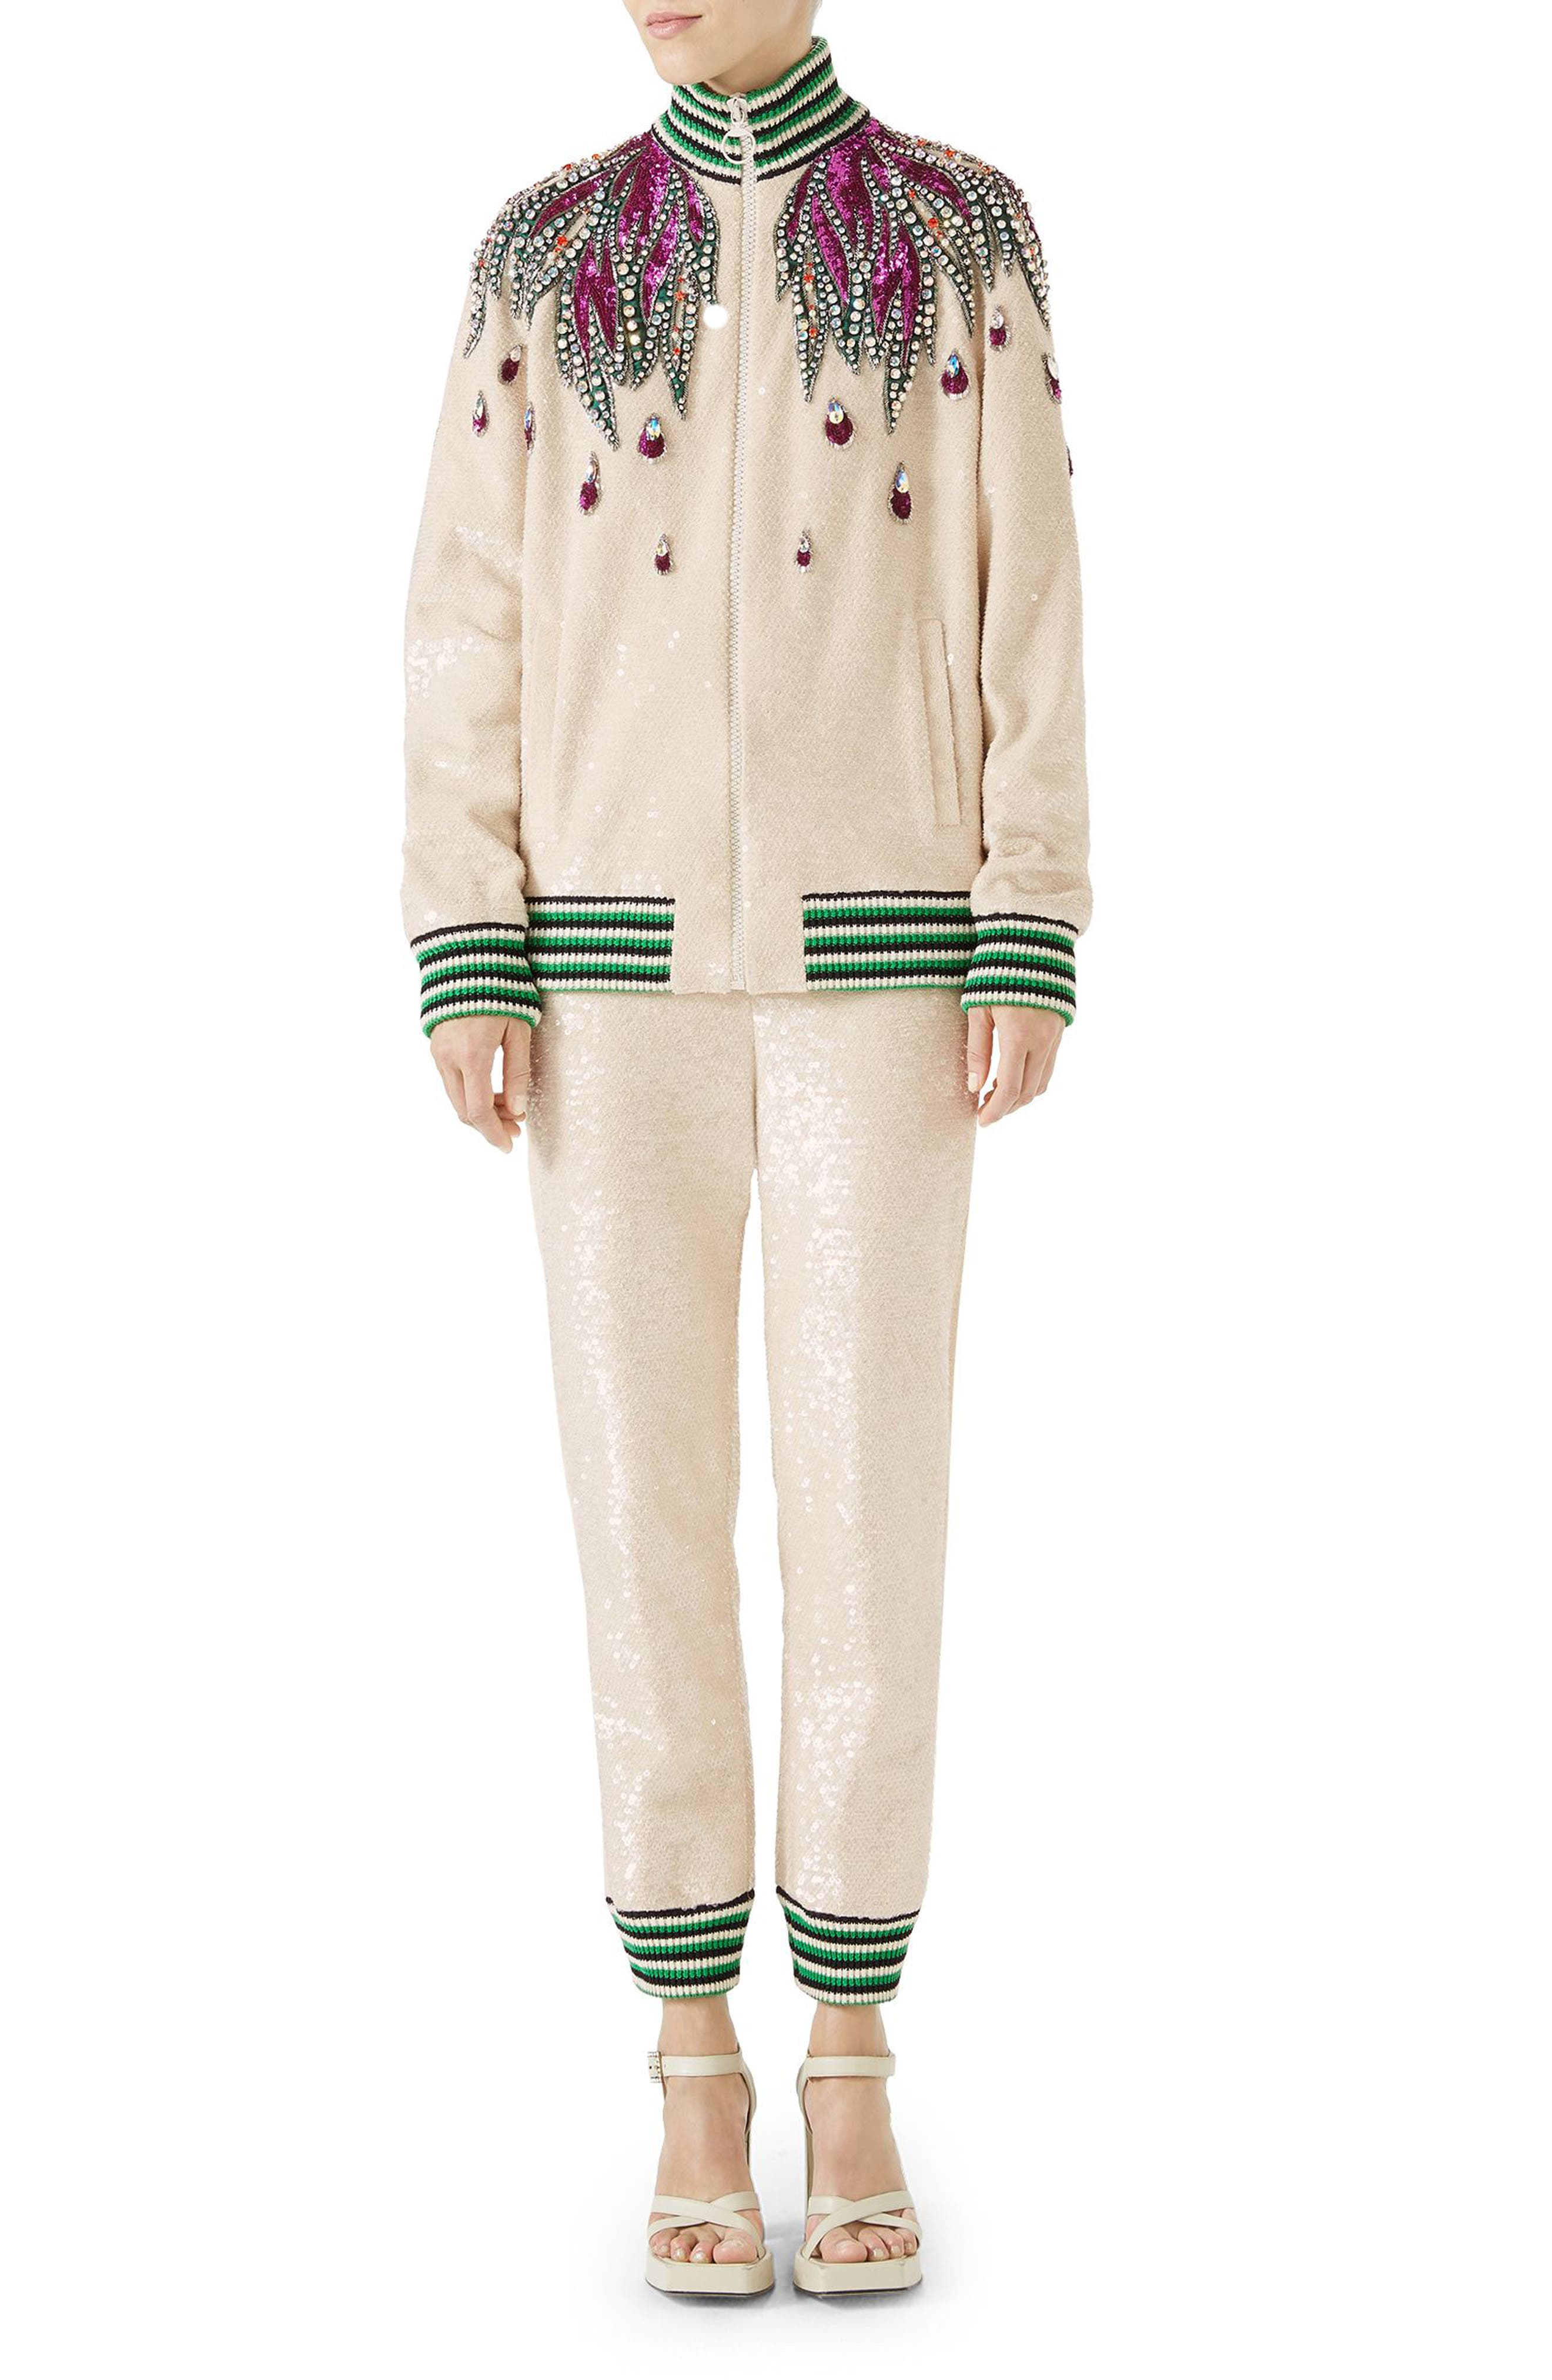 Embellished Track Jacket,                             Alternate thumbnail 4, color,                             Gardenia/ Multicolor